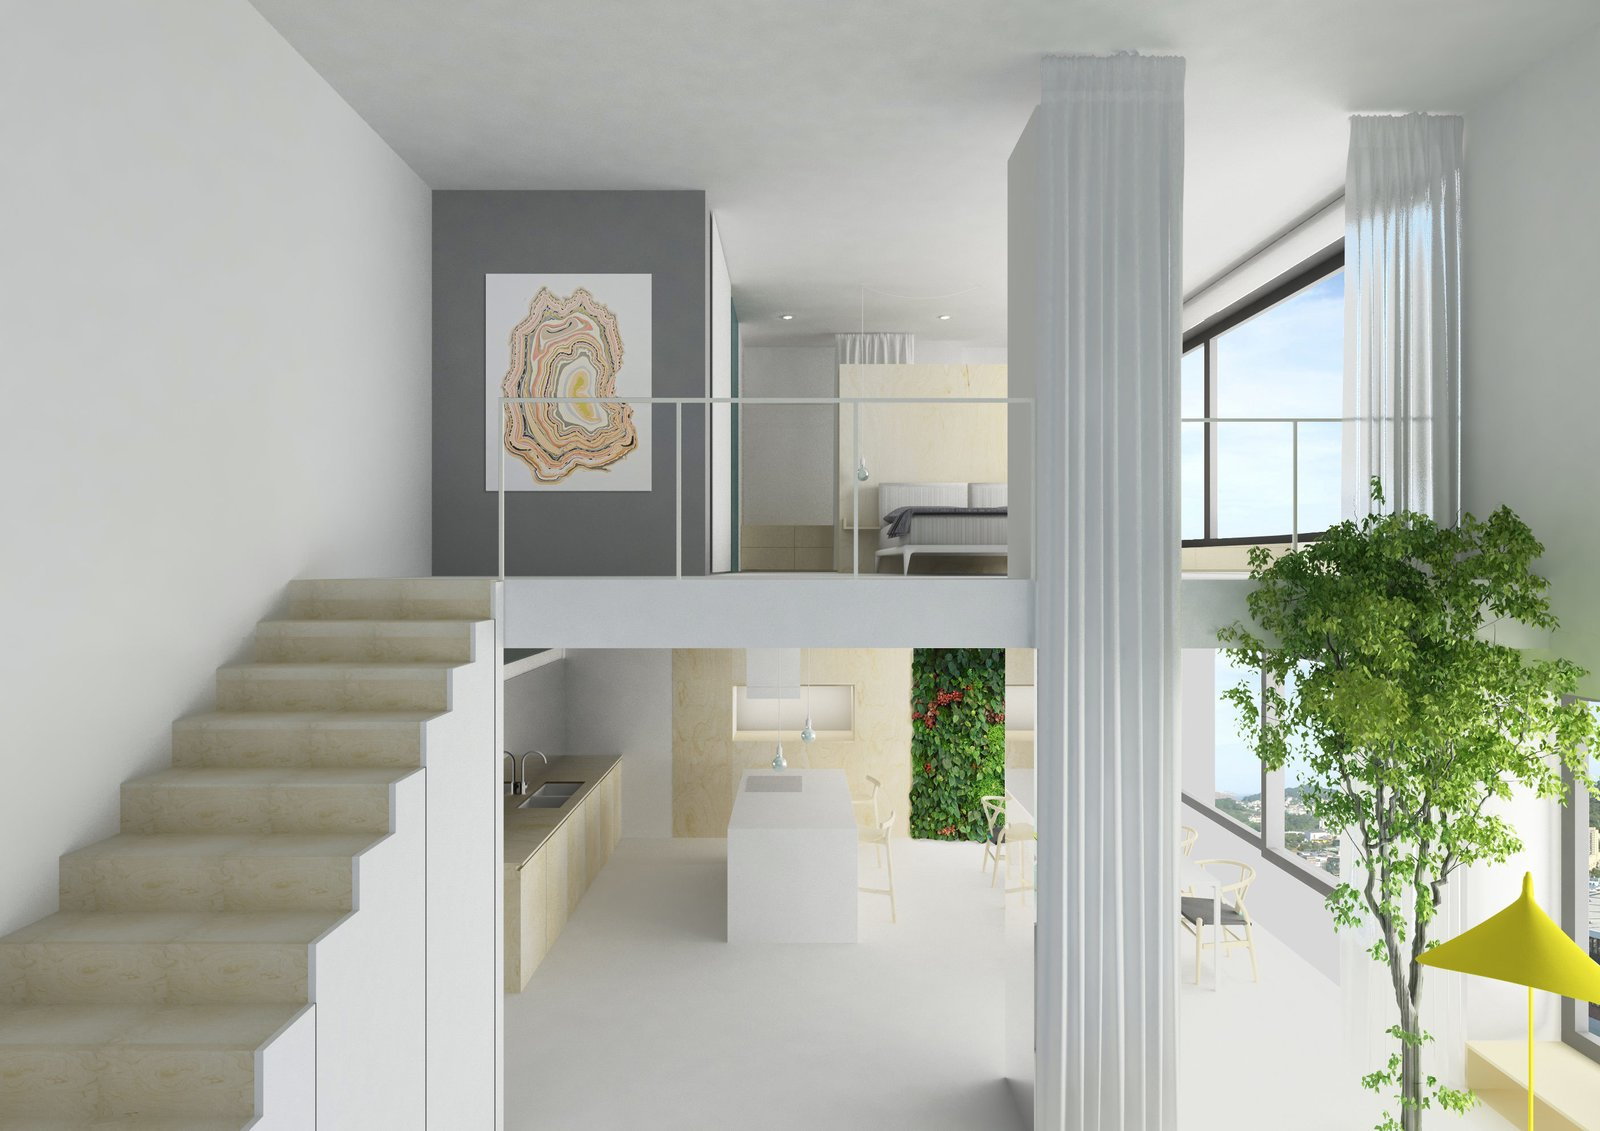 The two levels of the apartment designed by Herrenknecht in Zurich. 127+ Inspiring Interior Ideas by Dwell